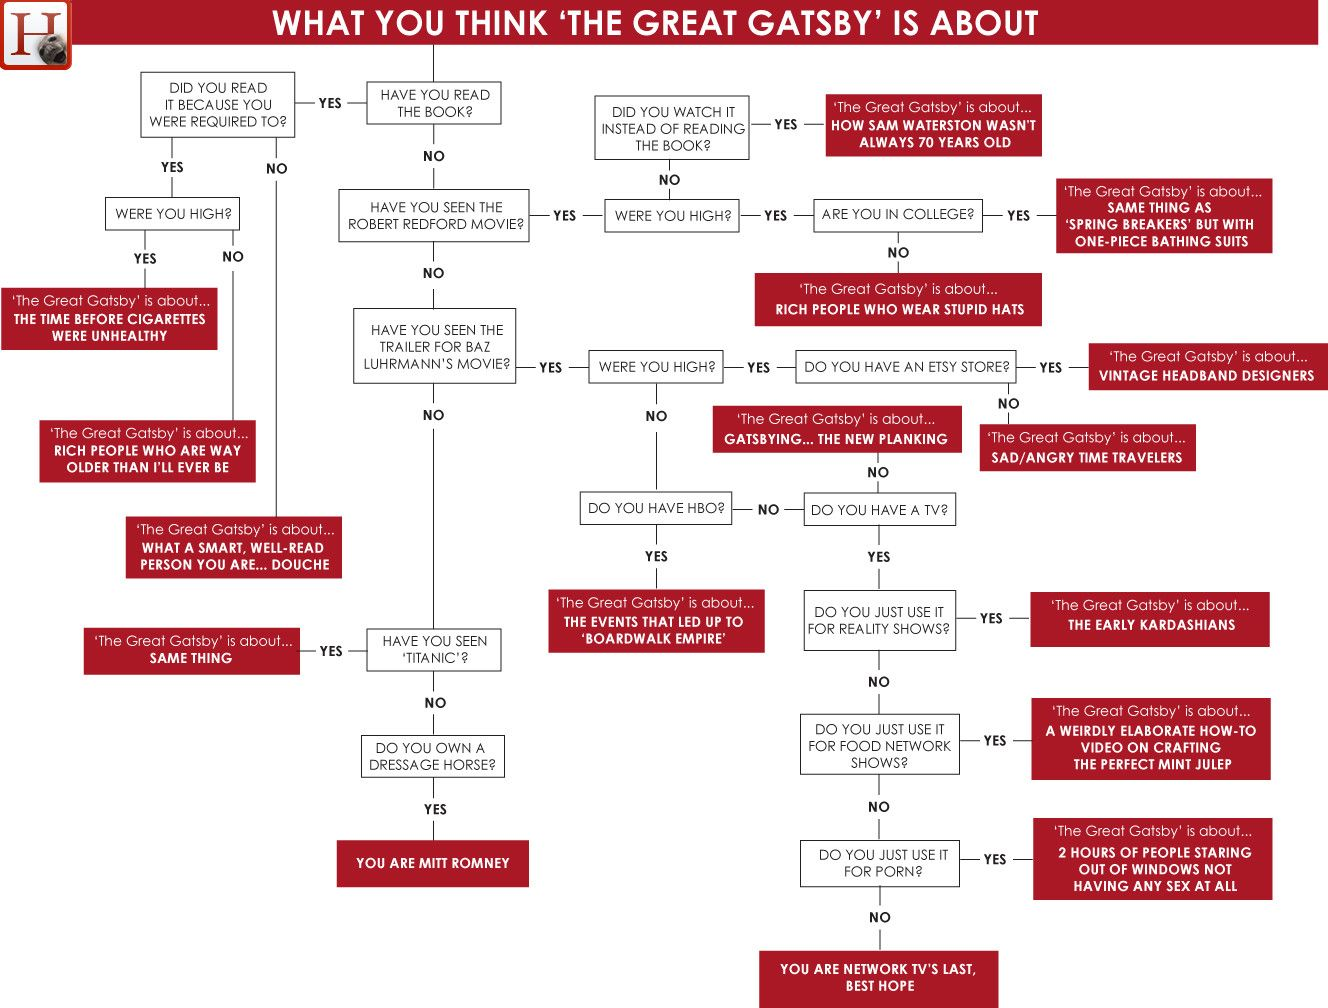 What You Think The Great Gatsby Is About